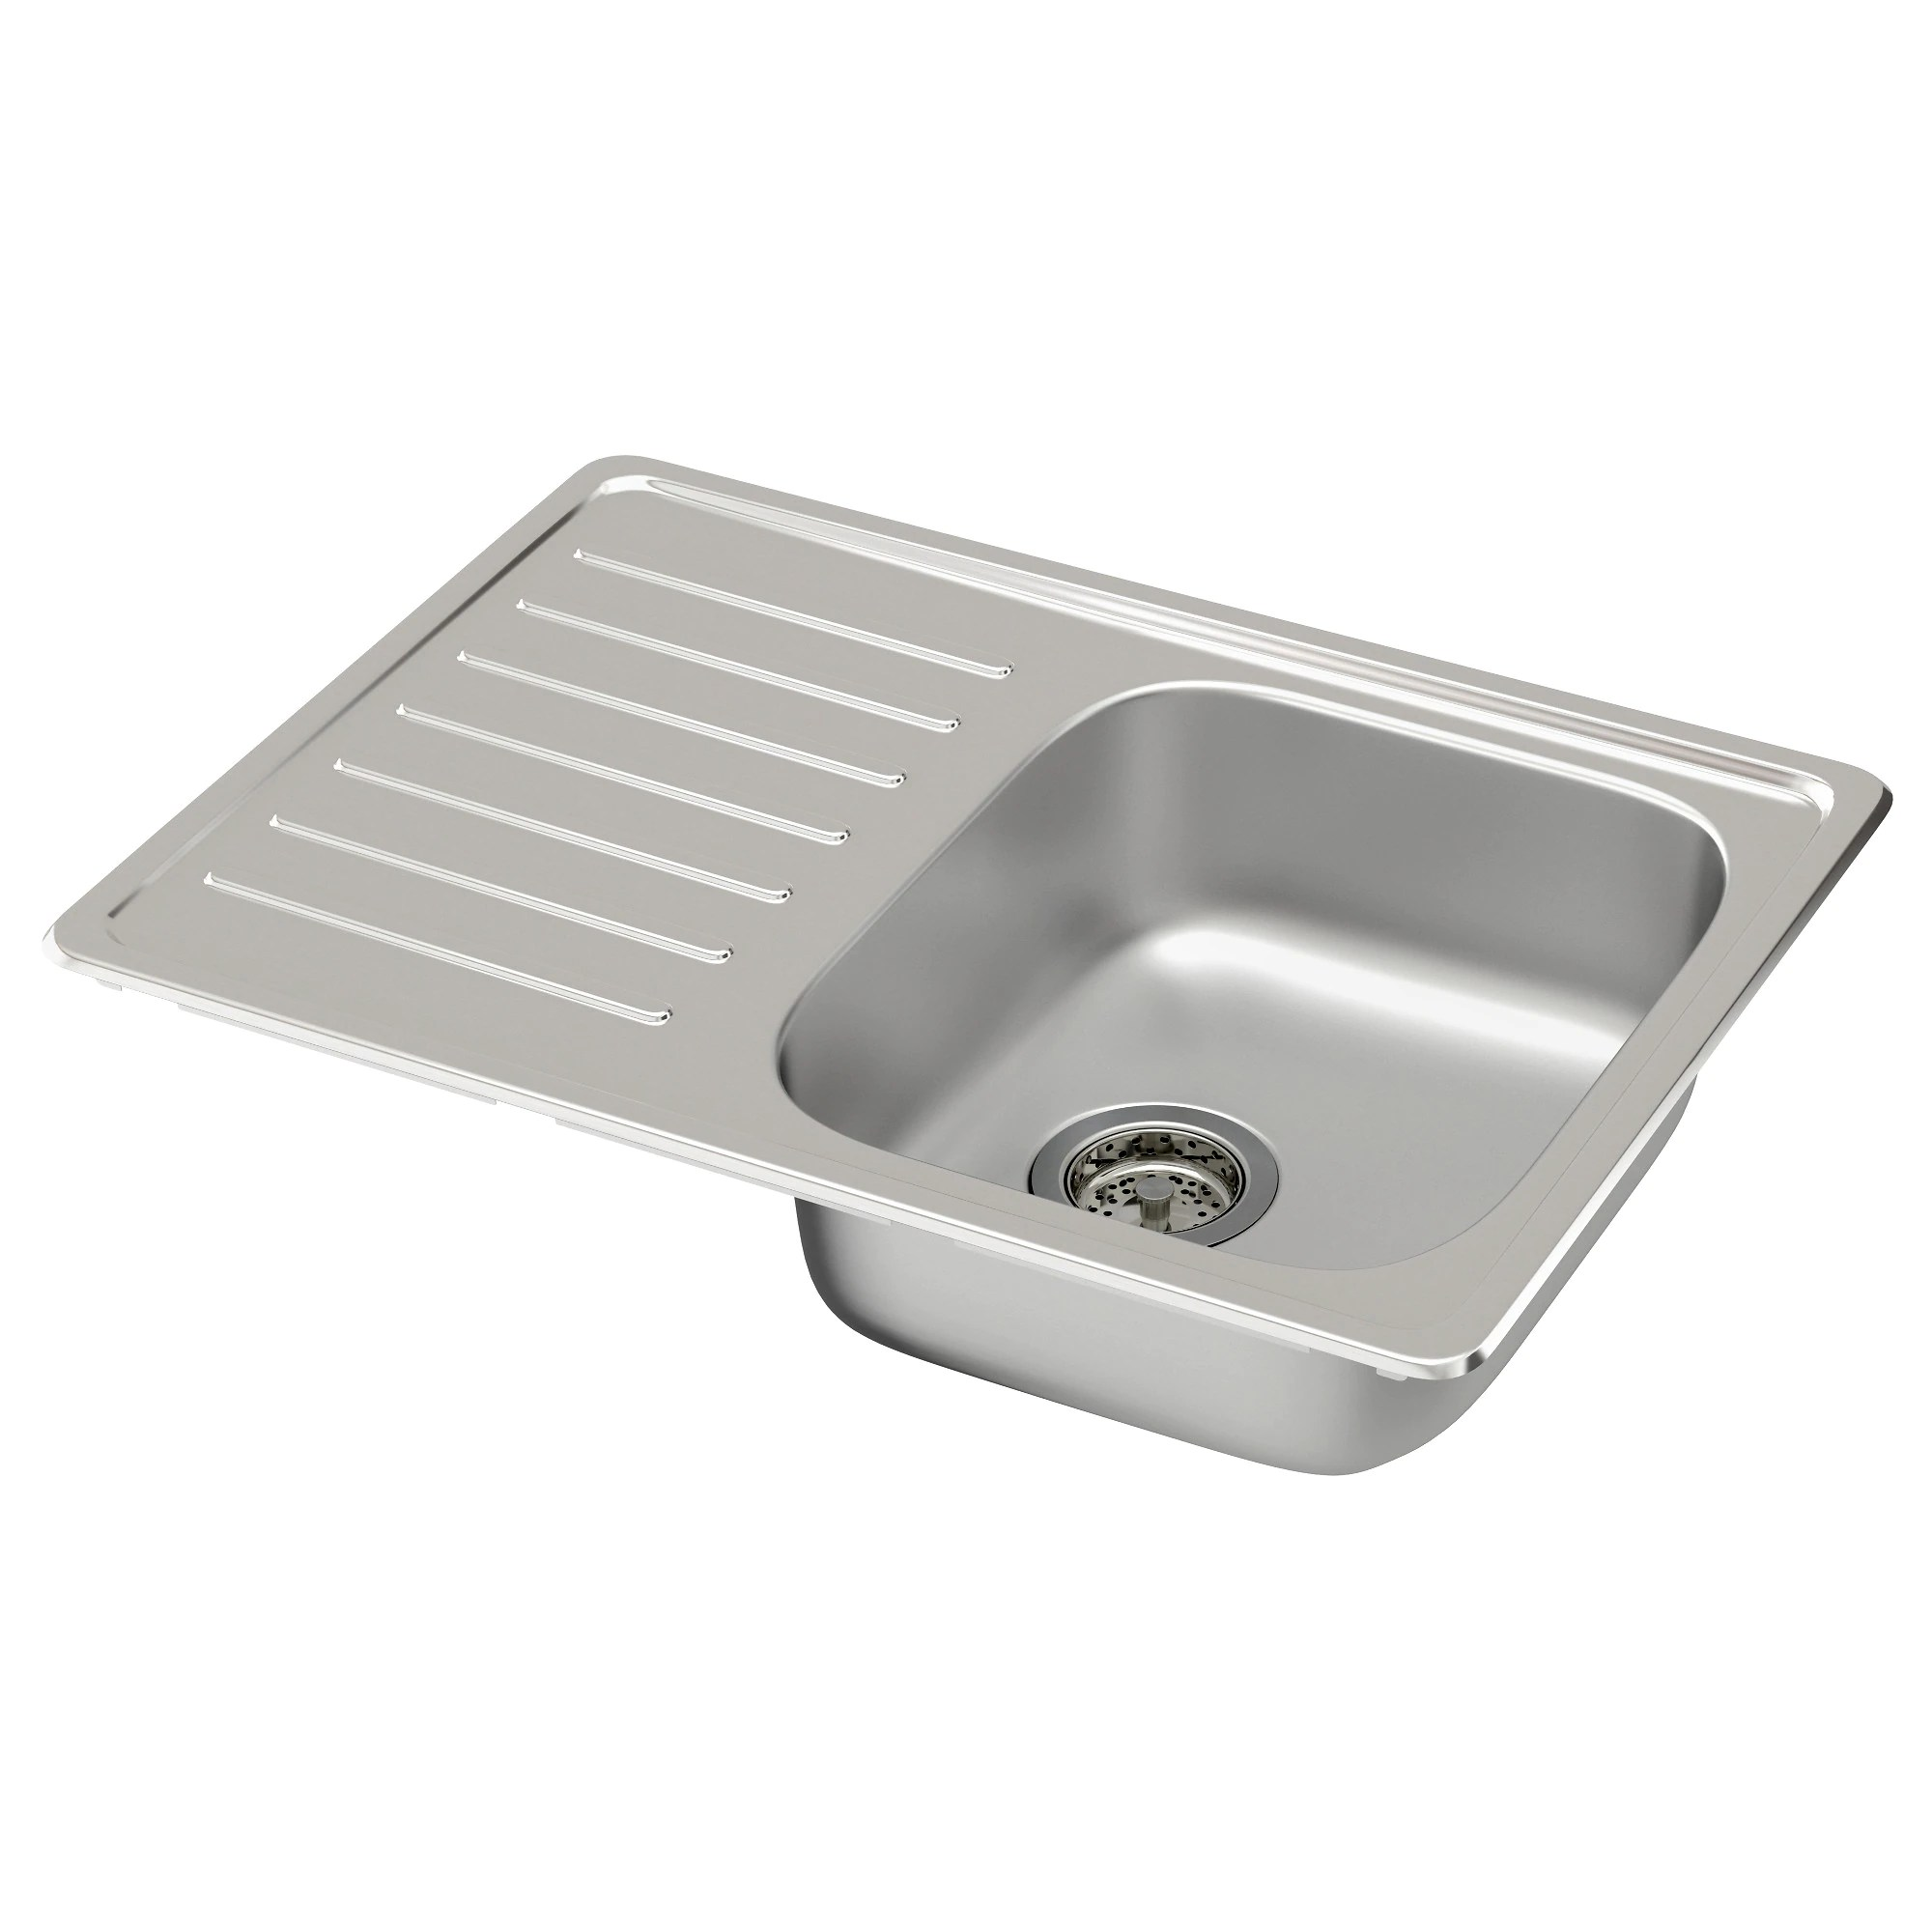 kitchen sink FYNDIG single bowl top mount sink stainless steel Length 27 1 2